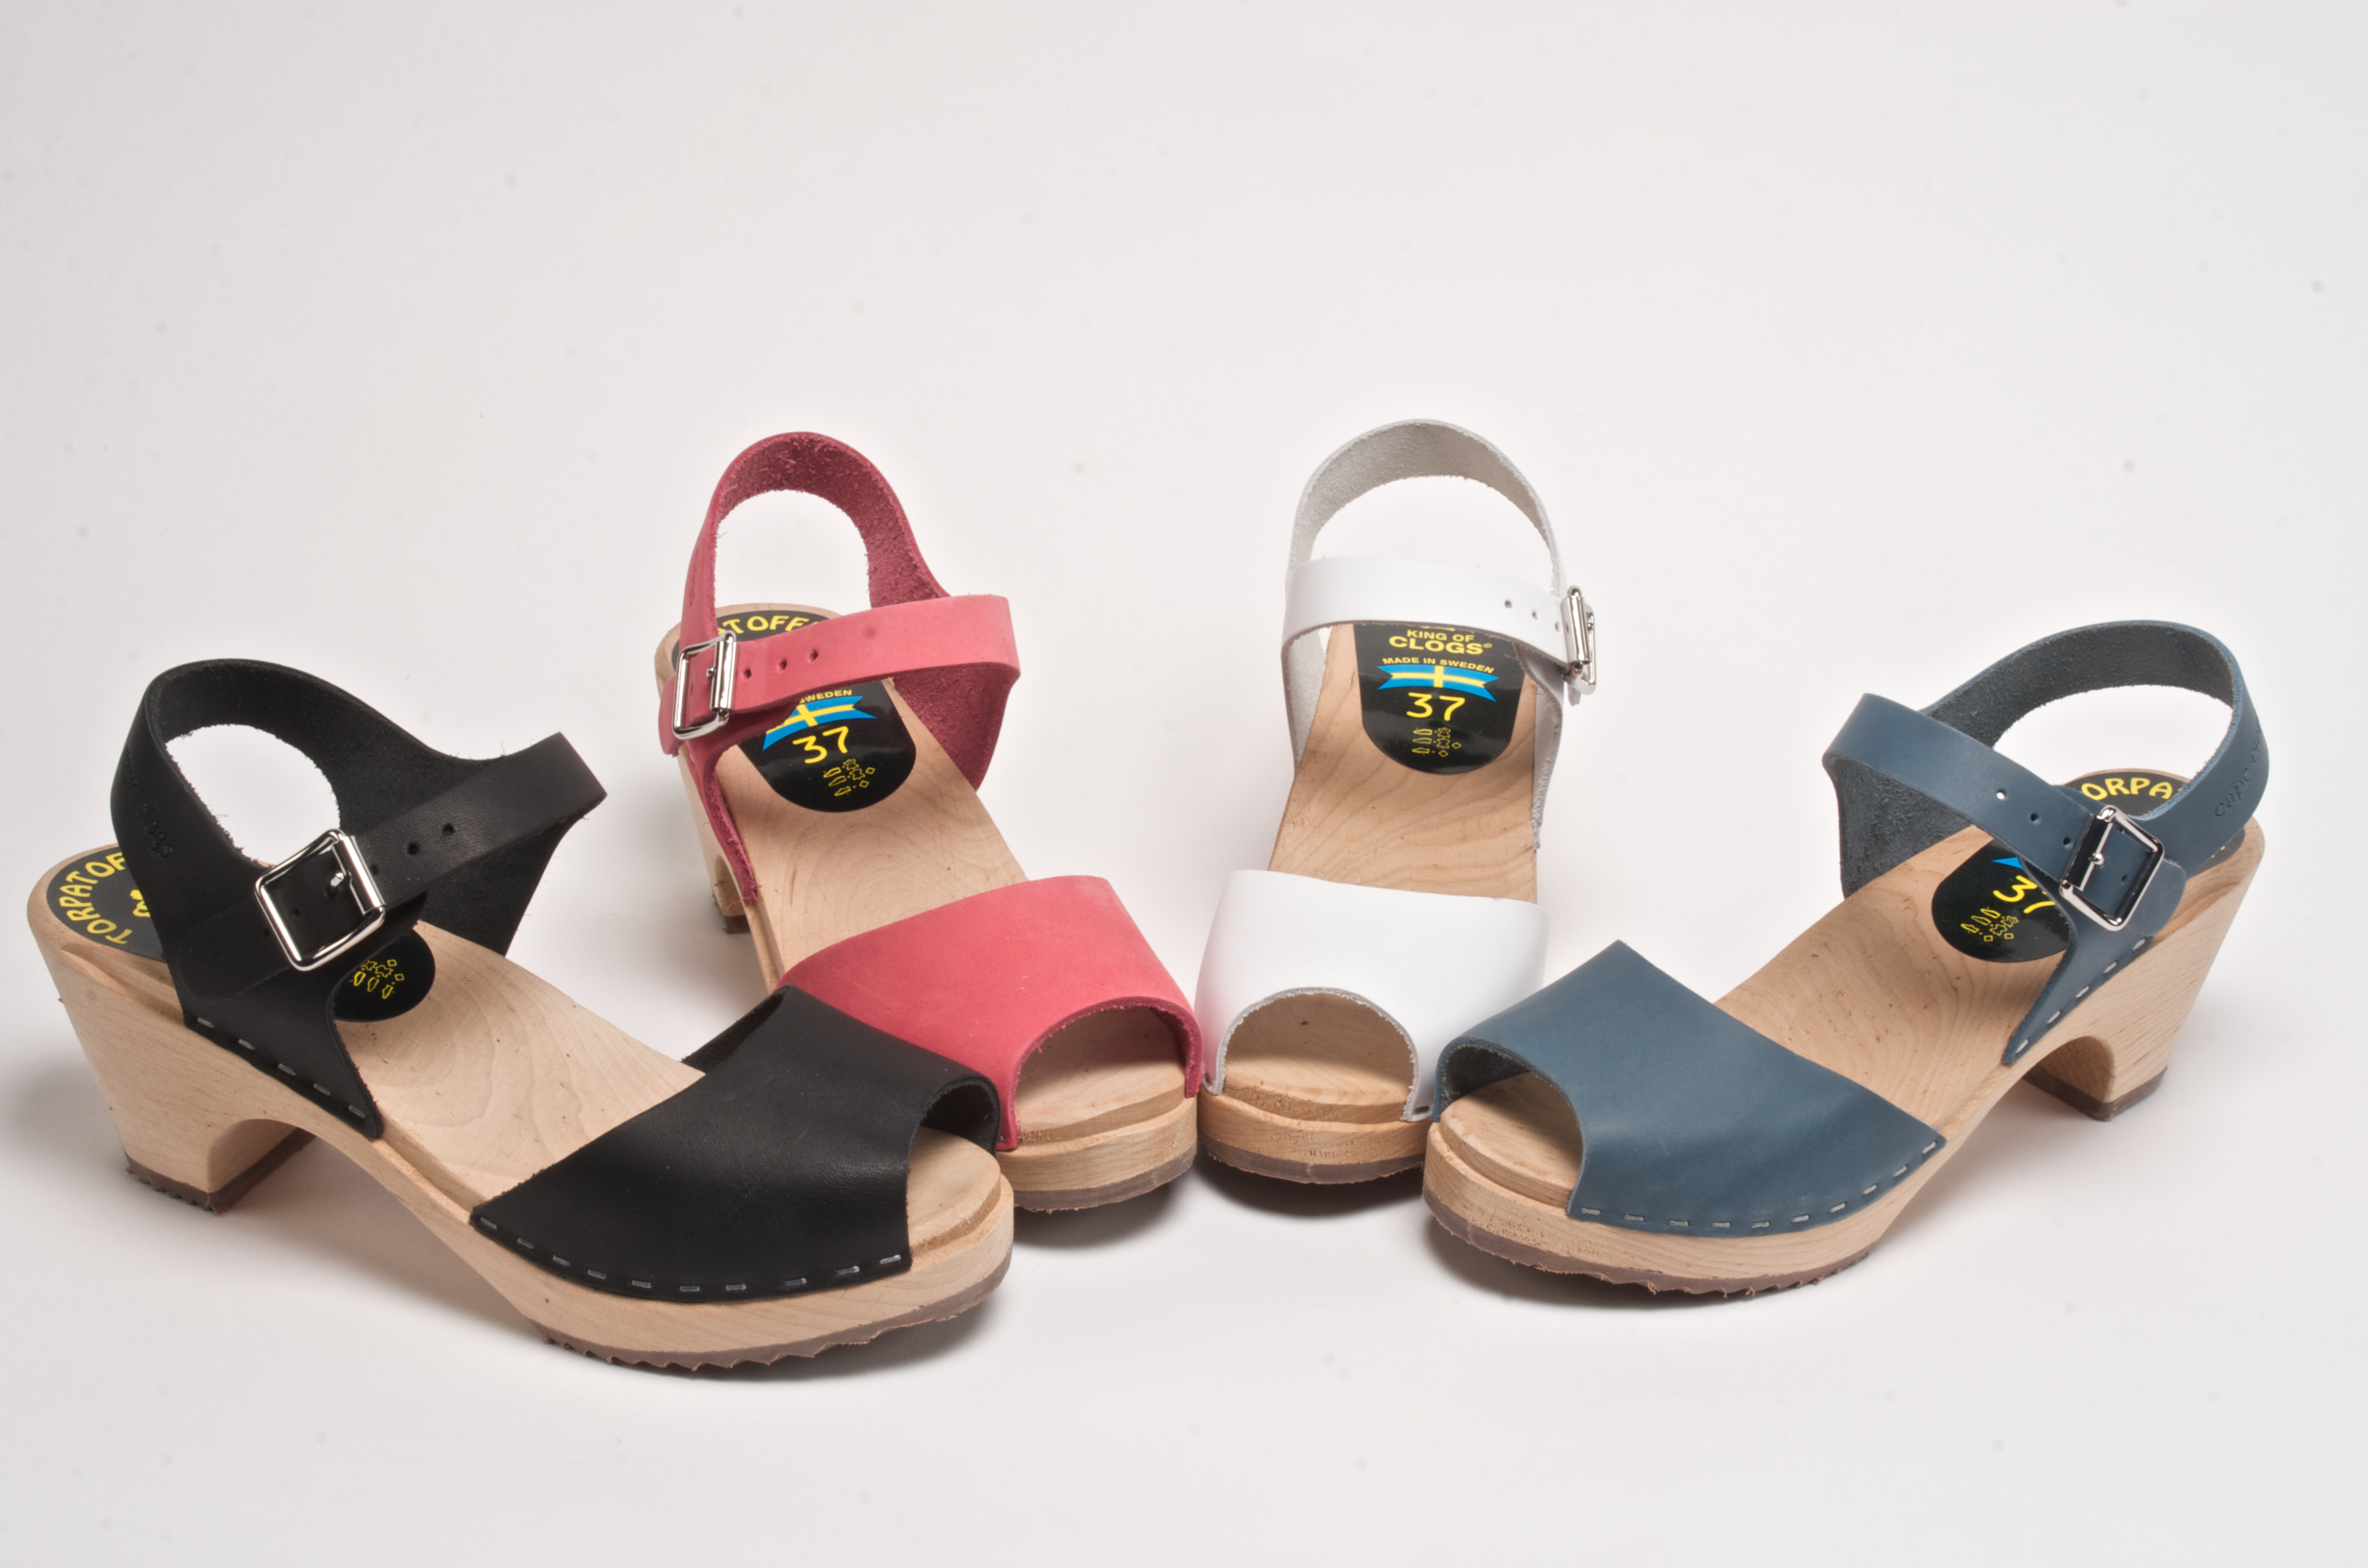 New Spring Colors in Cape Clogs' Sundial Open Peep Toe Sandal